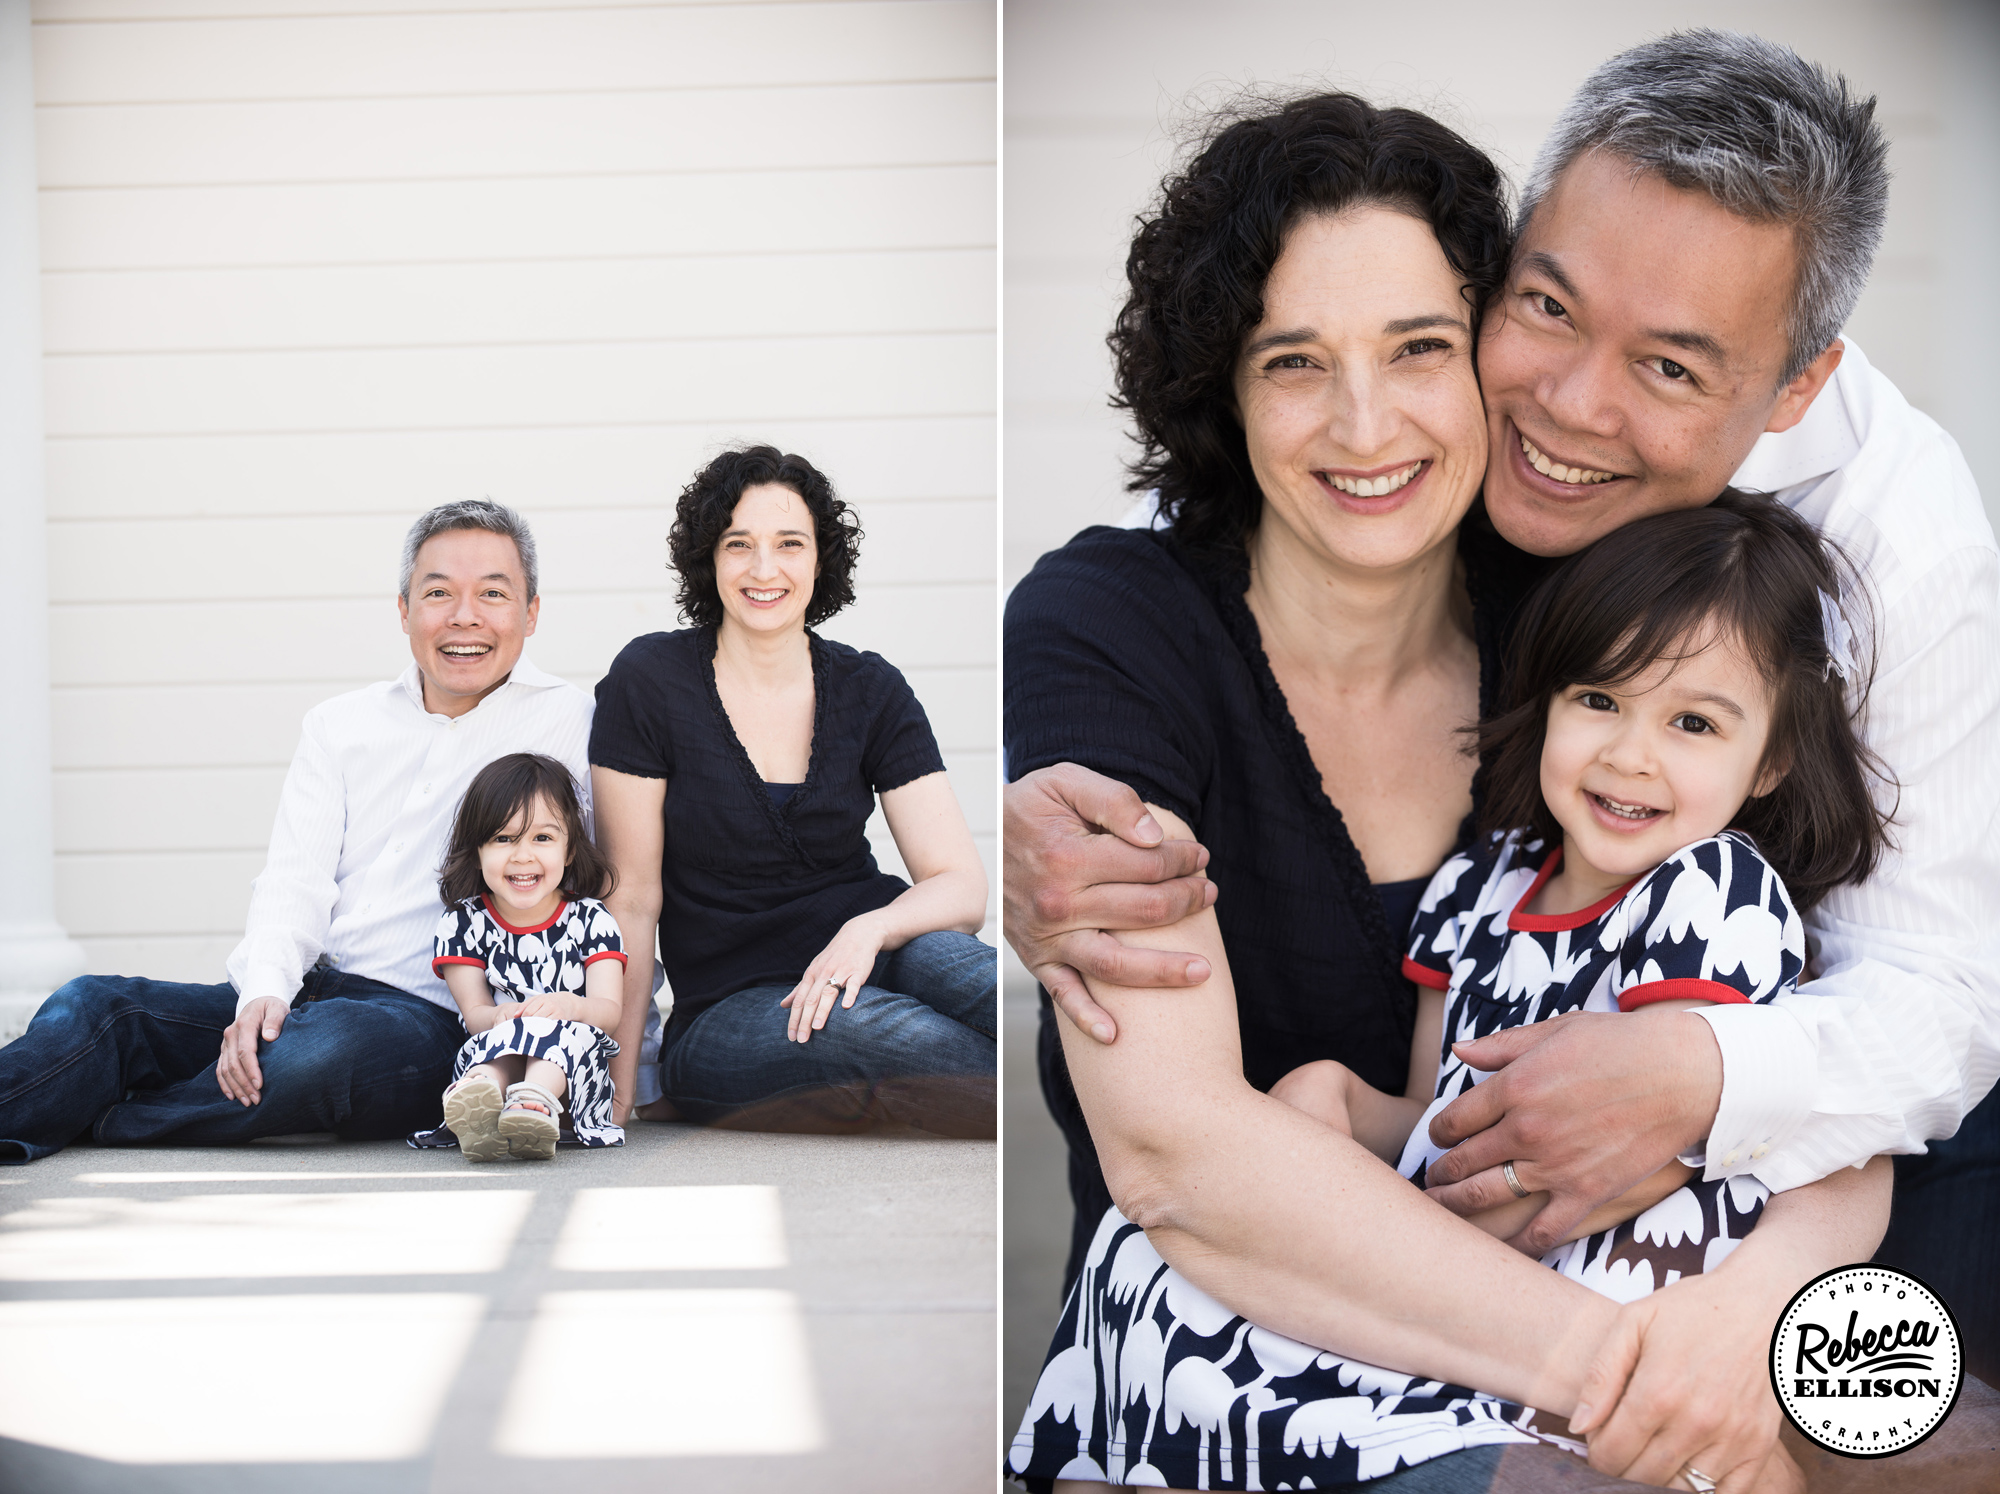 A family of three poses together during a portrait session with Kirkland Family Photographer Rebecca Ellison